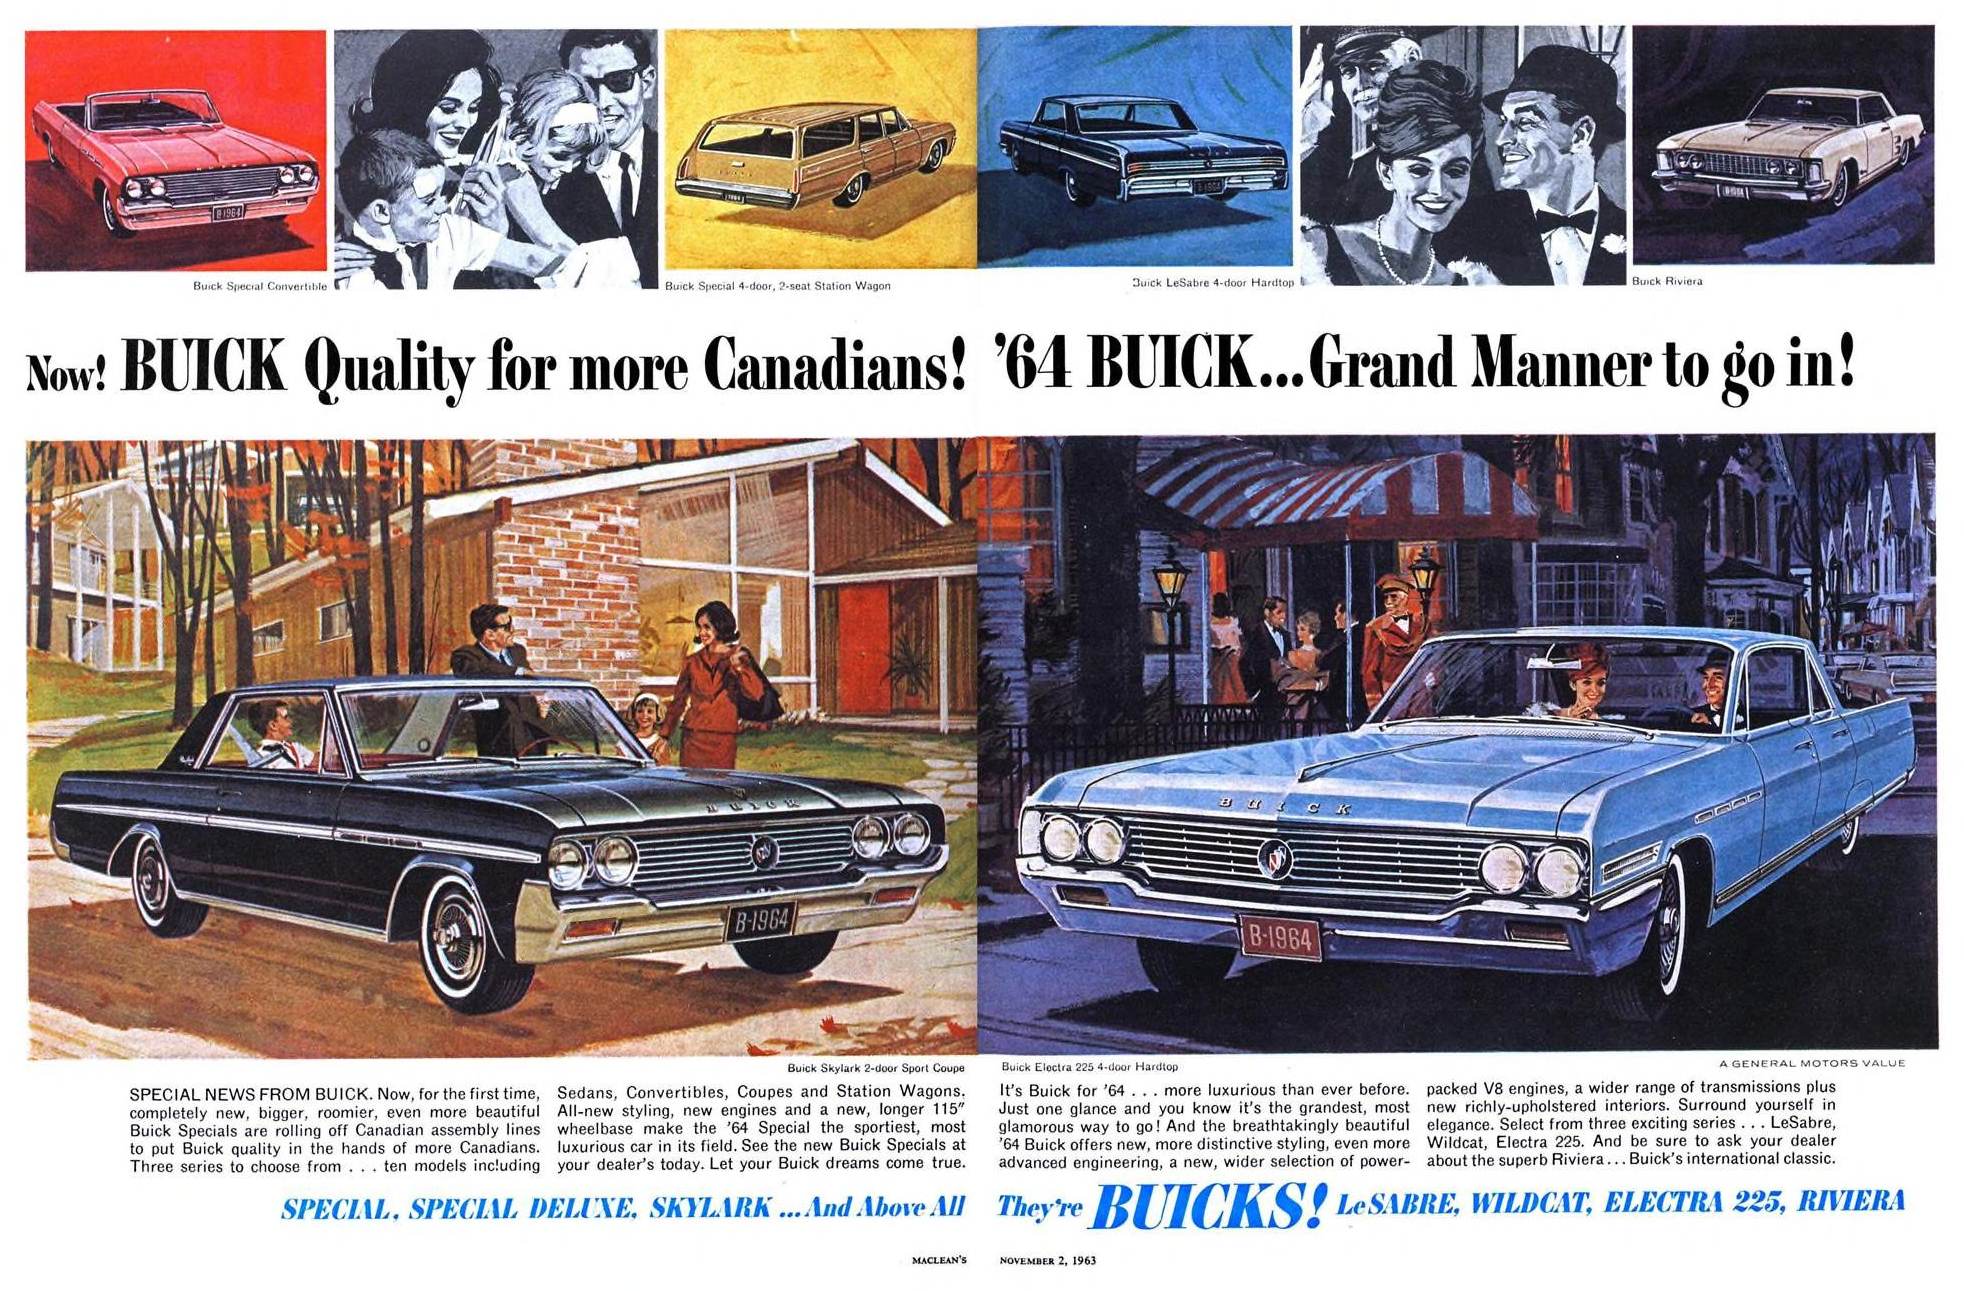 1964 Buick - published in Maclean's - November 2, 1963